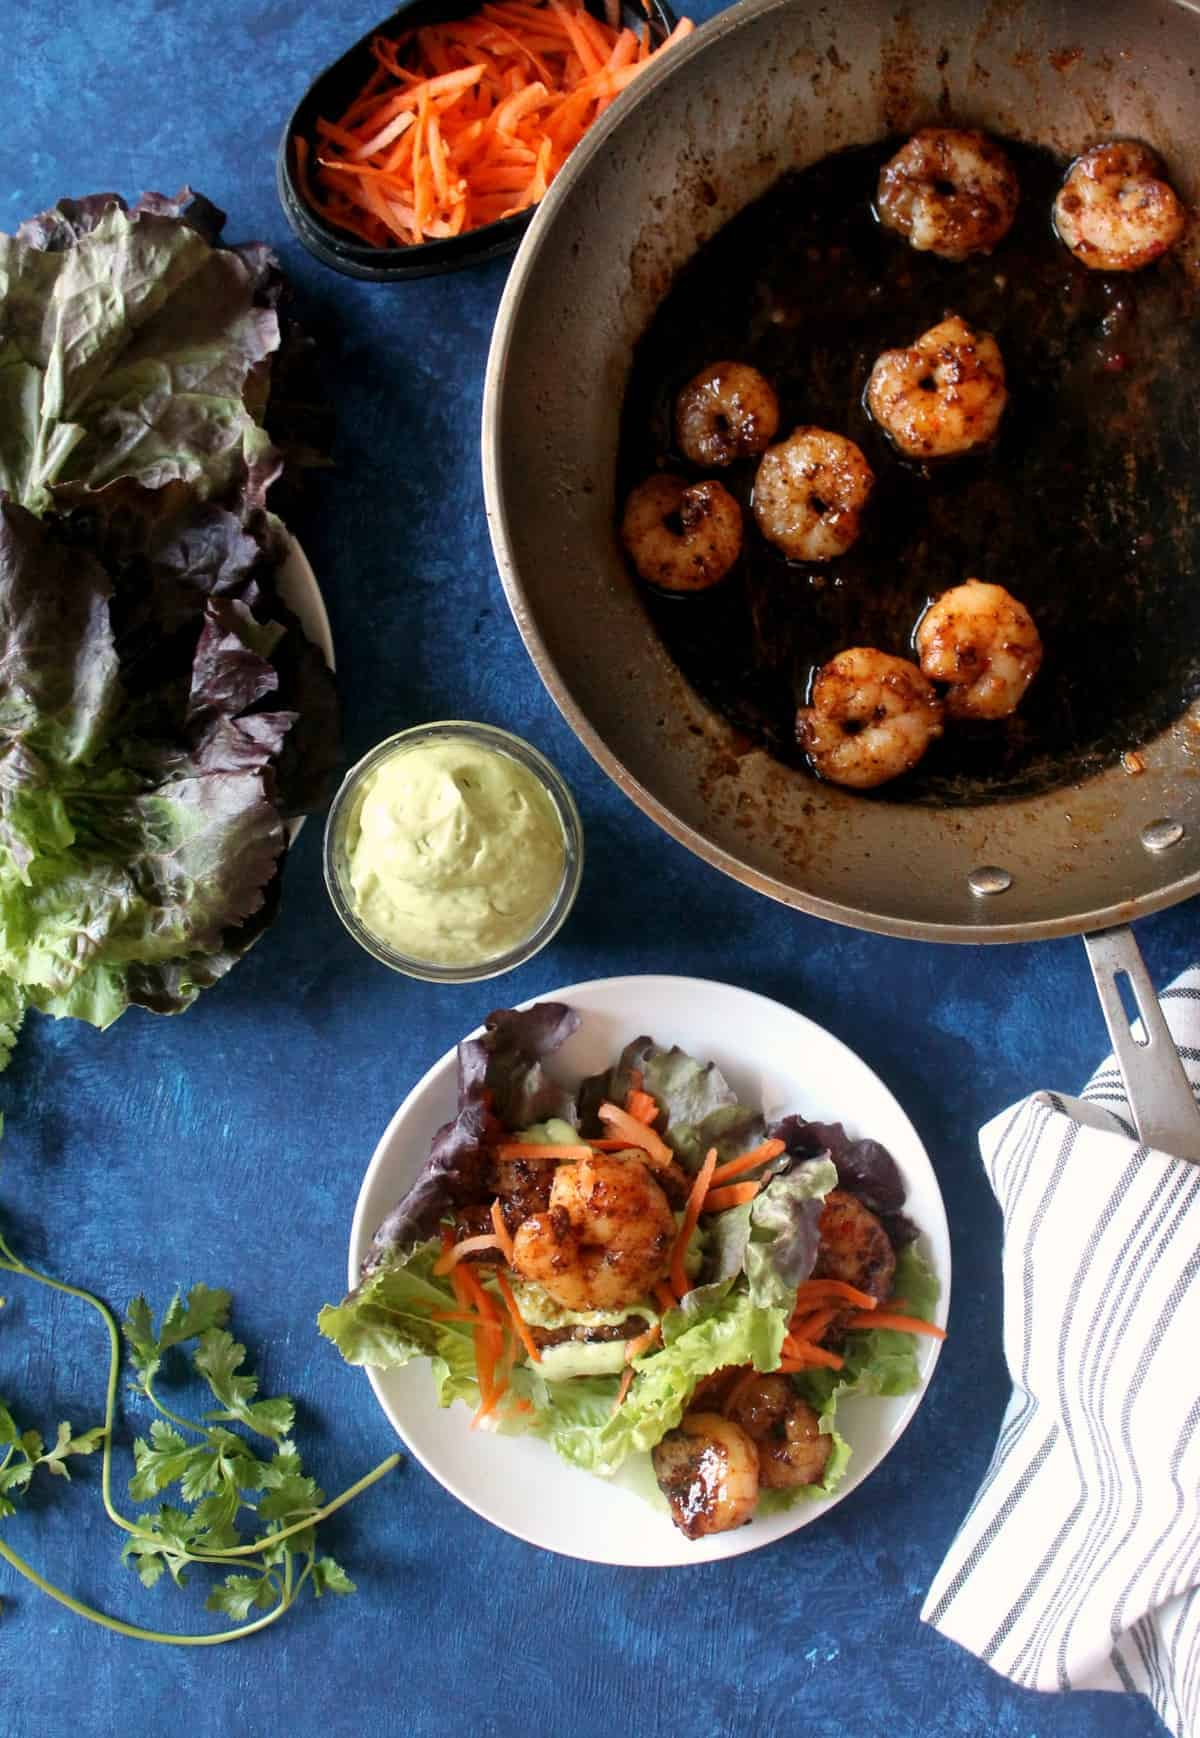 Sweet & Spicy Shrimp Lettuce Wraps with Avocado Cream! These satisfying wraps take just minutes to make but will leave you dreaming about them for days!